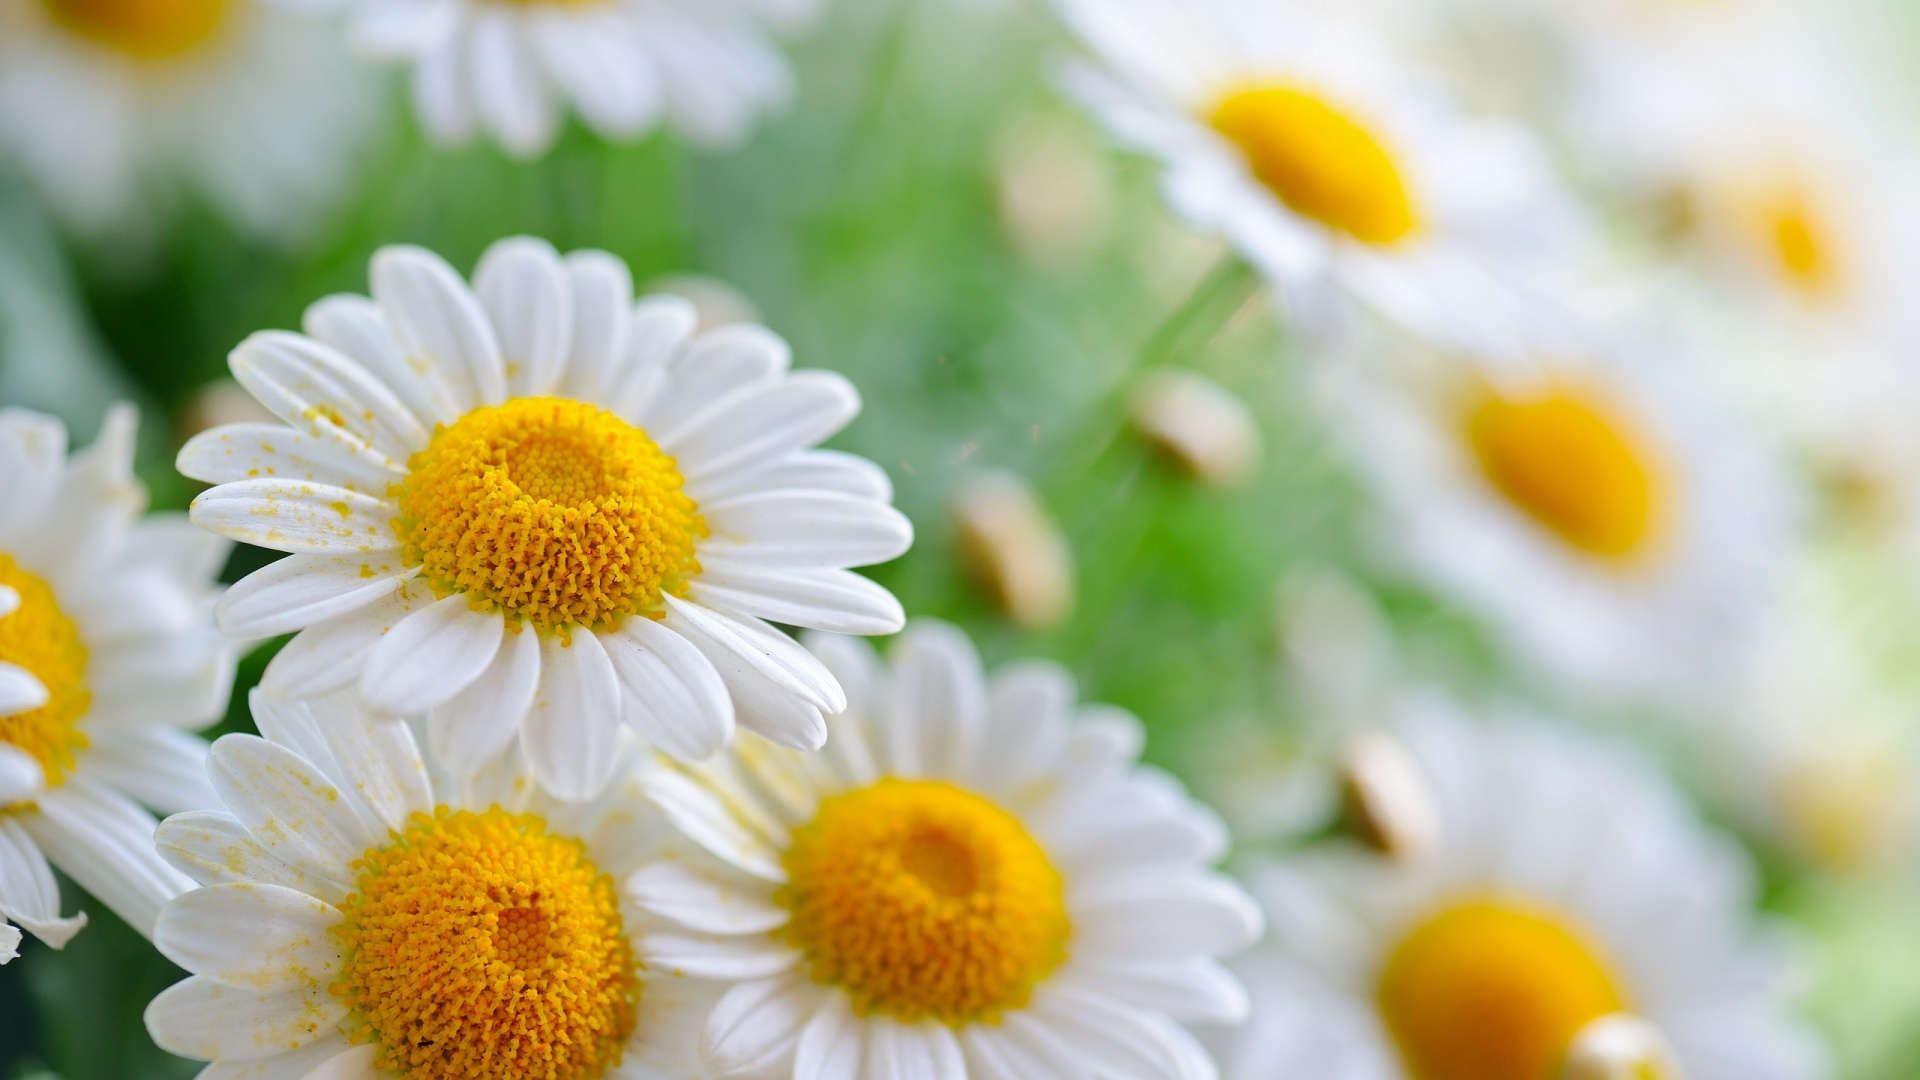 Daisies Wallpapers hd